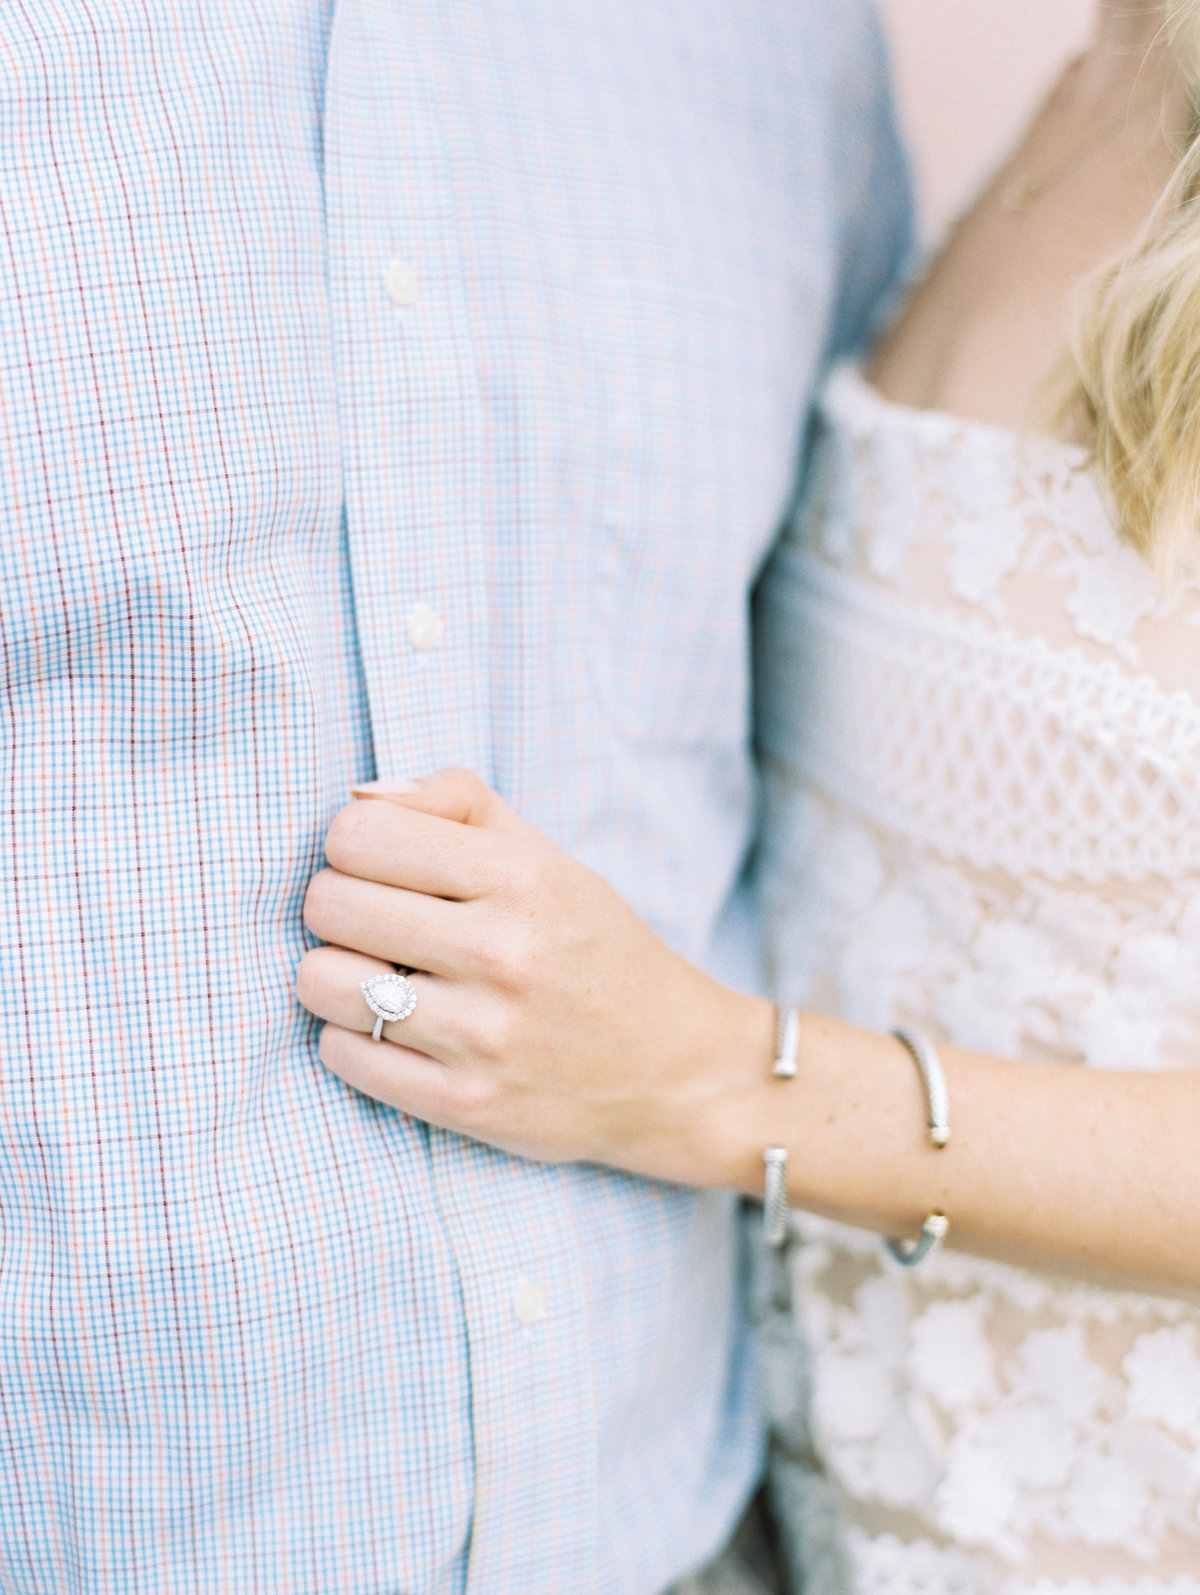 charleston-engagement-photos-wedding-photographer-philip-casey-photo-014